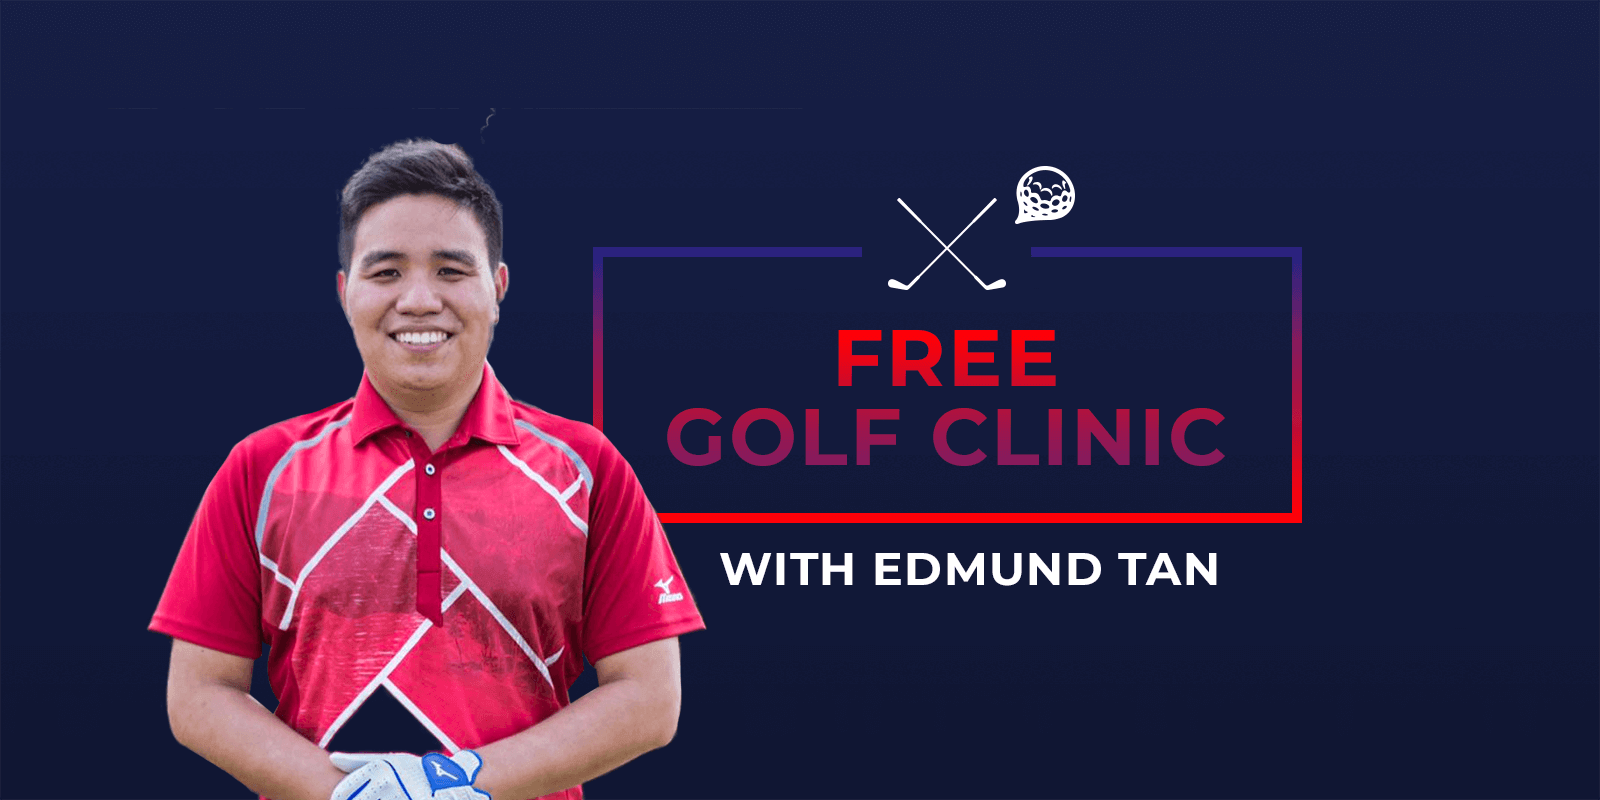 deemples: edmund tan free golf clinic